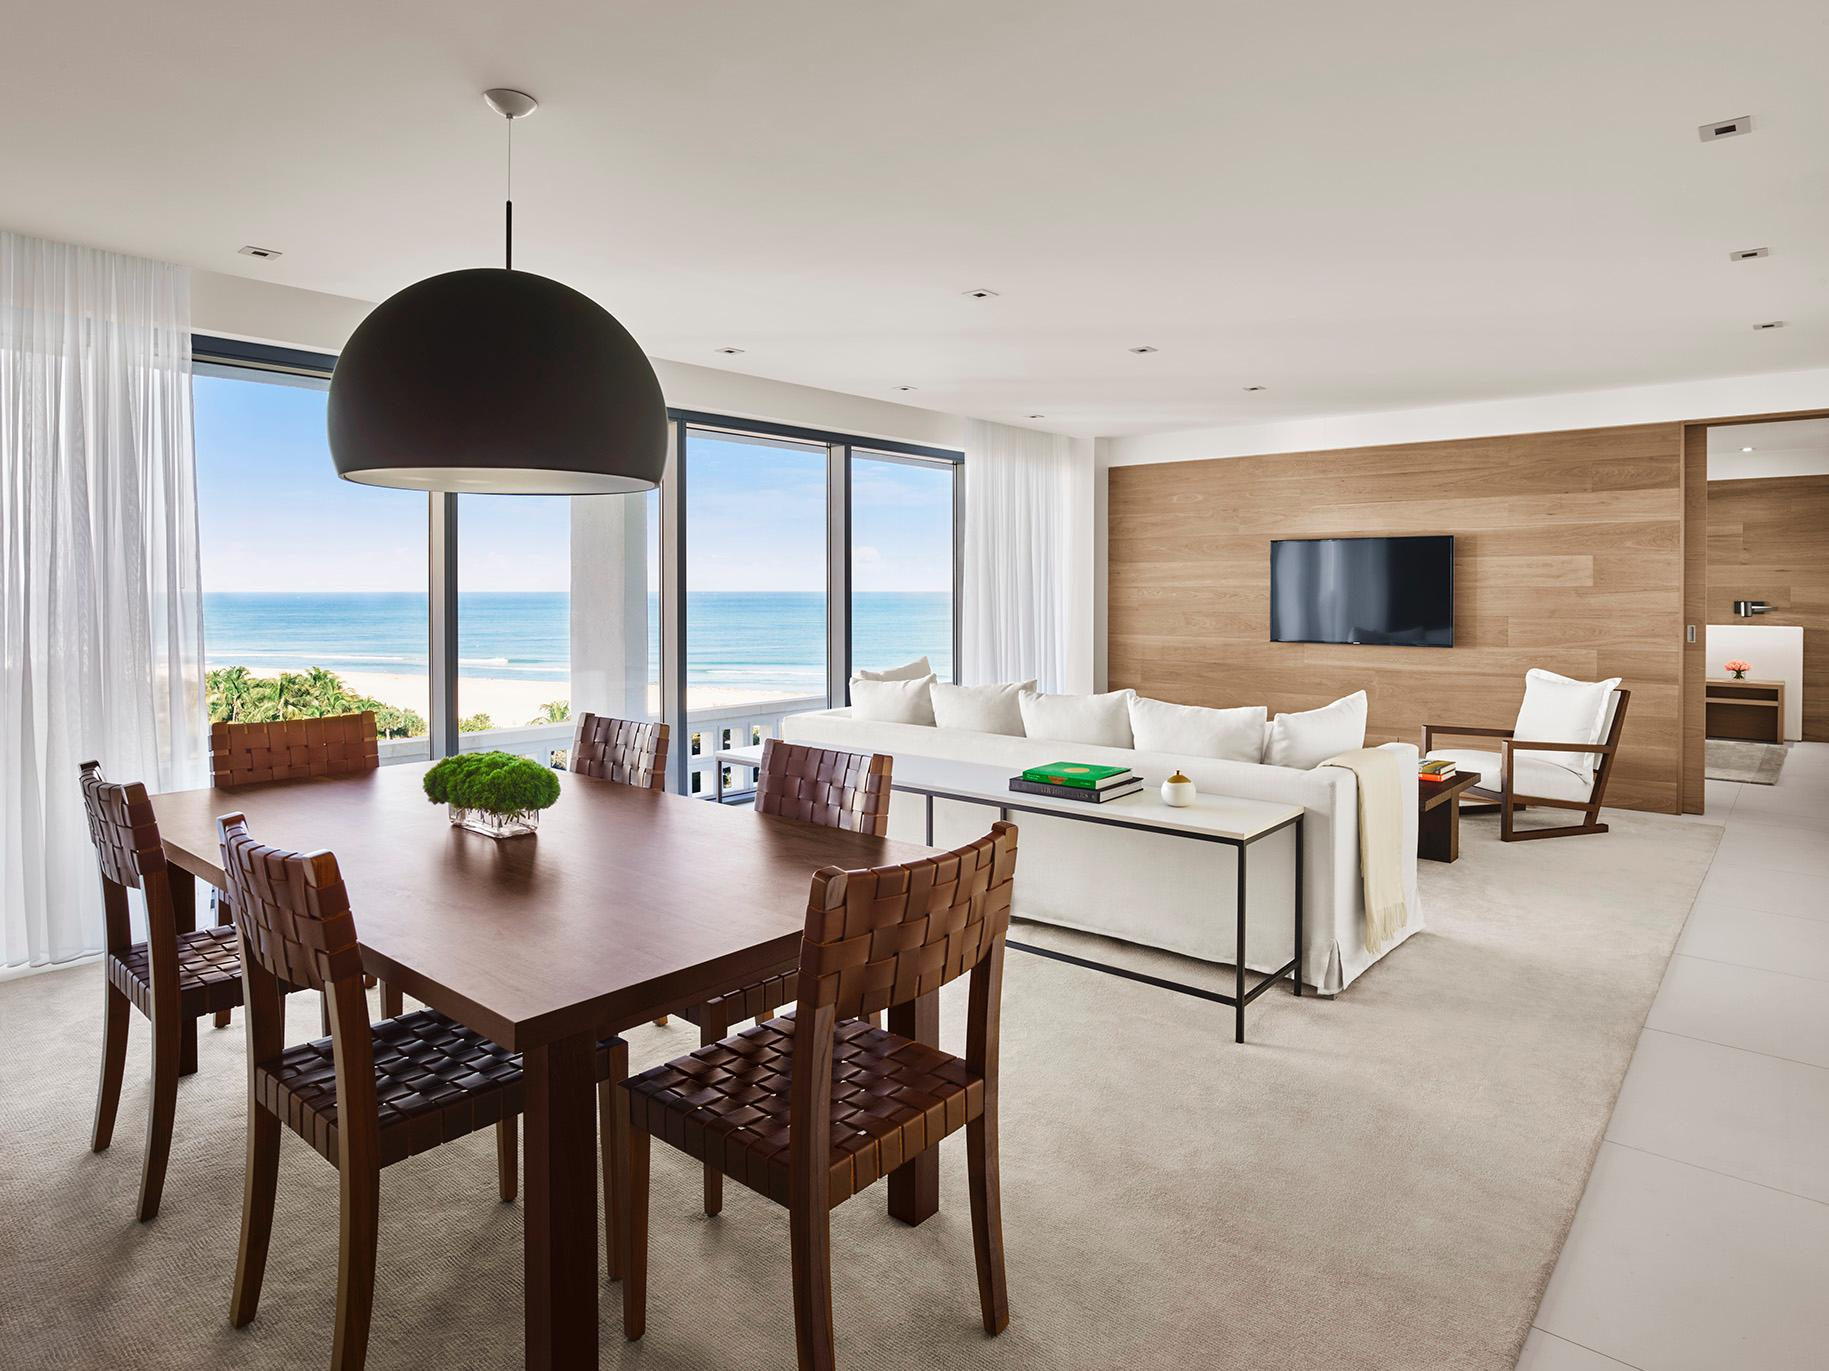 Deluxe Ocean View Suite 1,135 SqFt